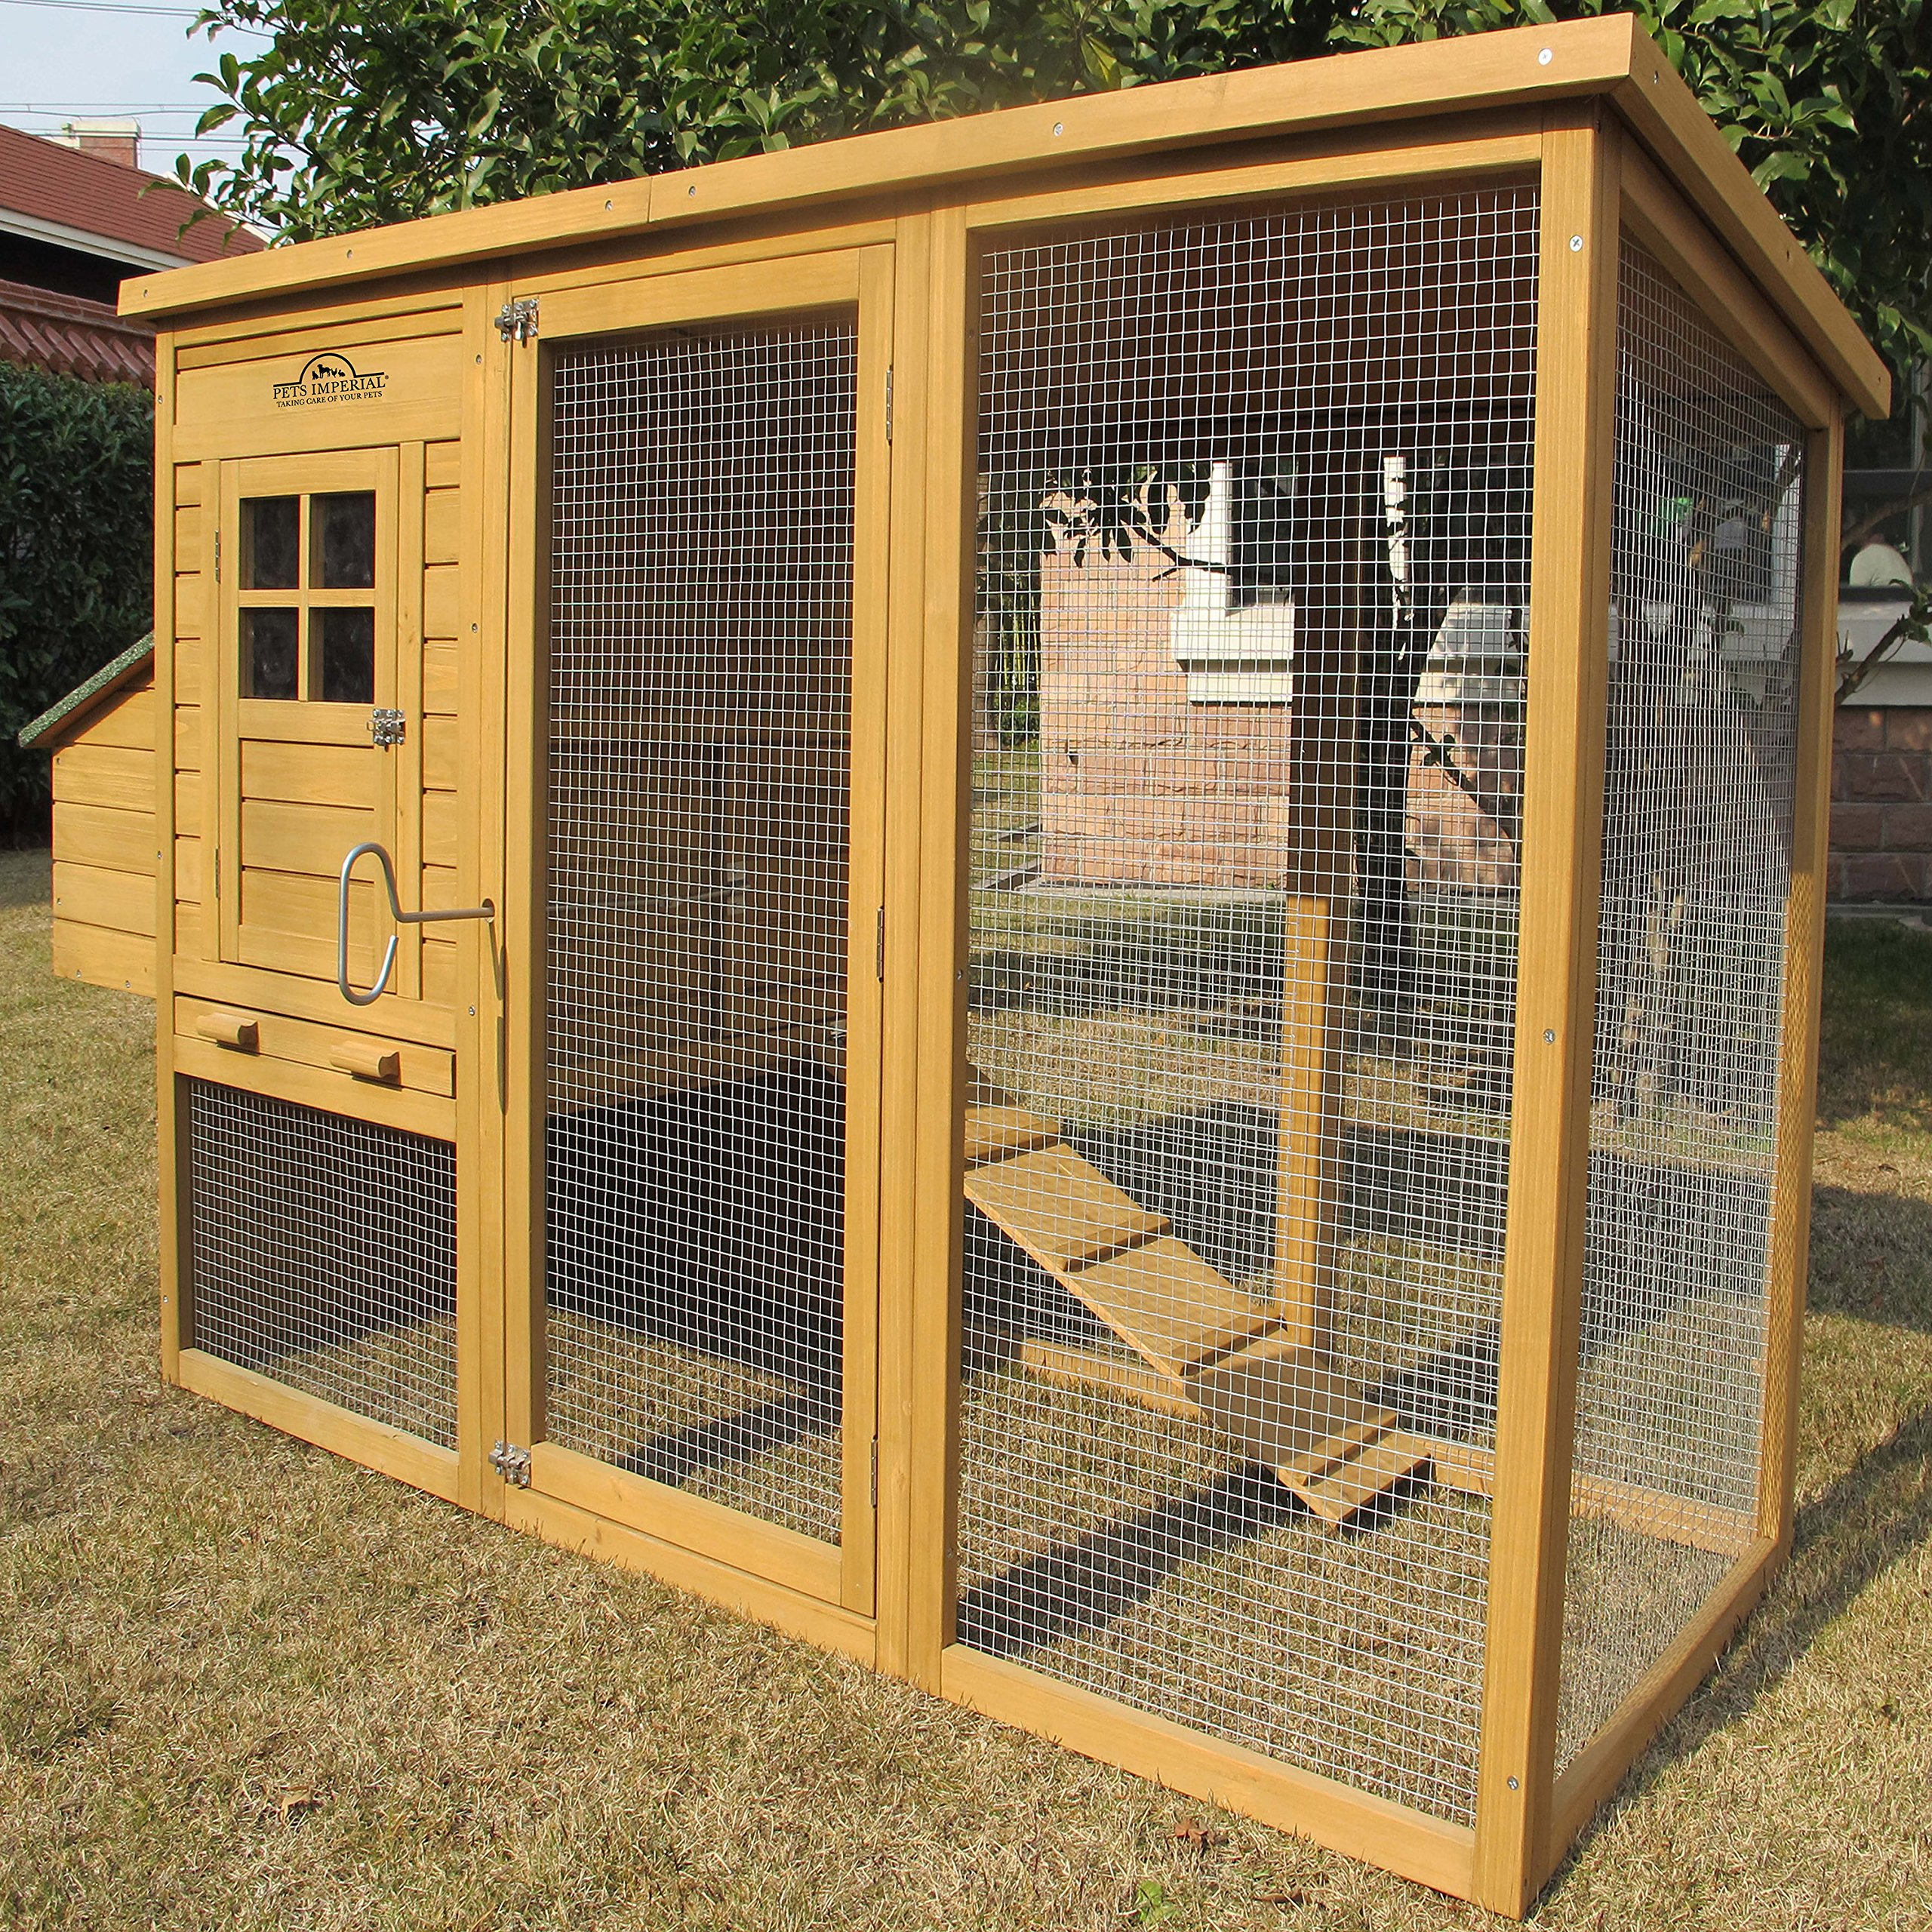 Pets Imperial Monmouth Large Chicken Coop 6ft 7'' in Length With Roof That Opens Suitable For Up To 4 Birds